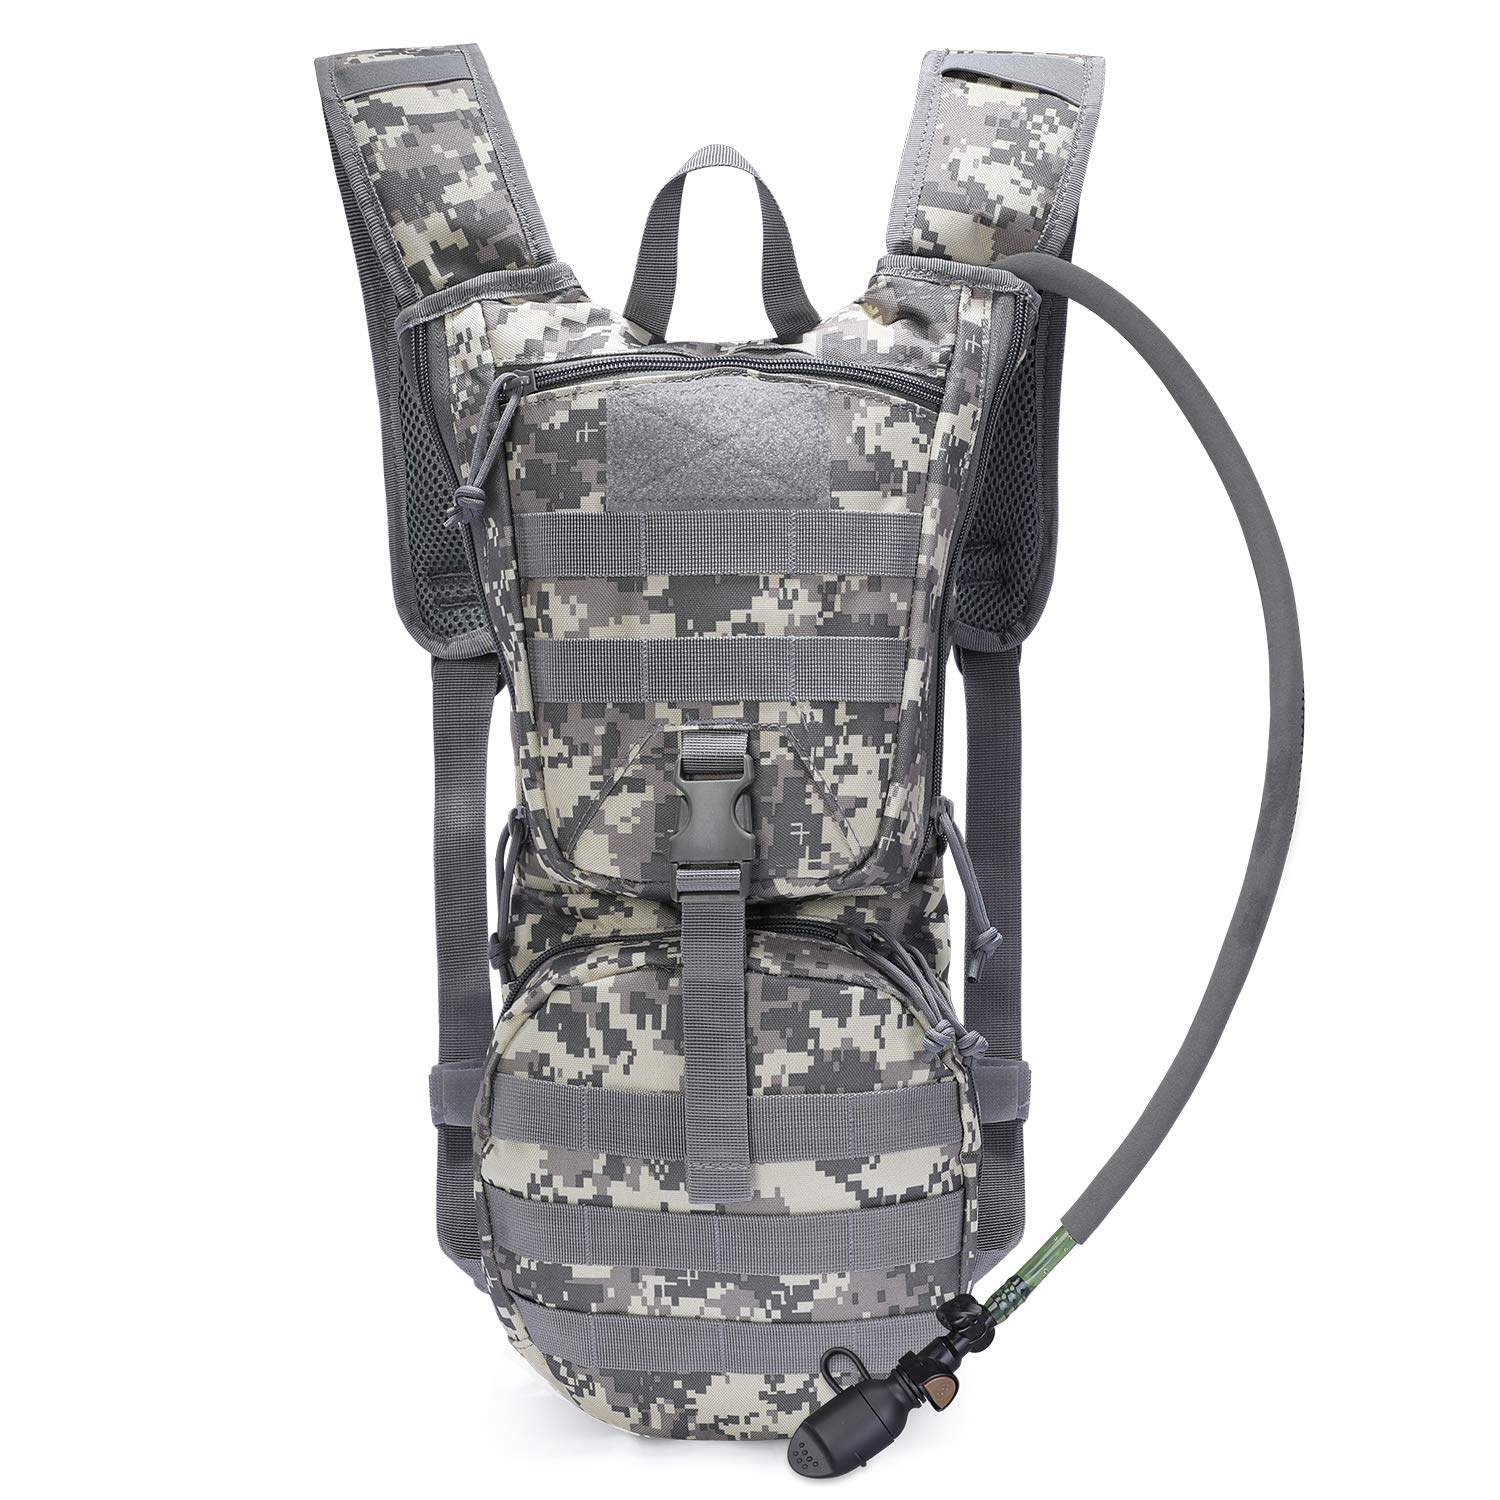 Running Walking and Climbing Biking G4Free Military Hydration Pack Backpacks with 3L Upgraded Bladder for Hiking